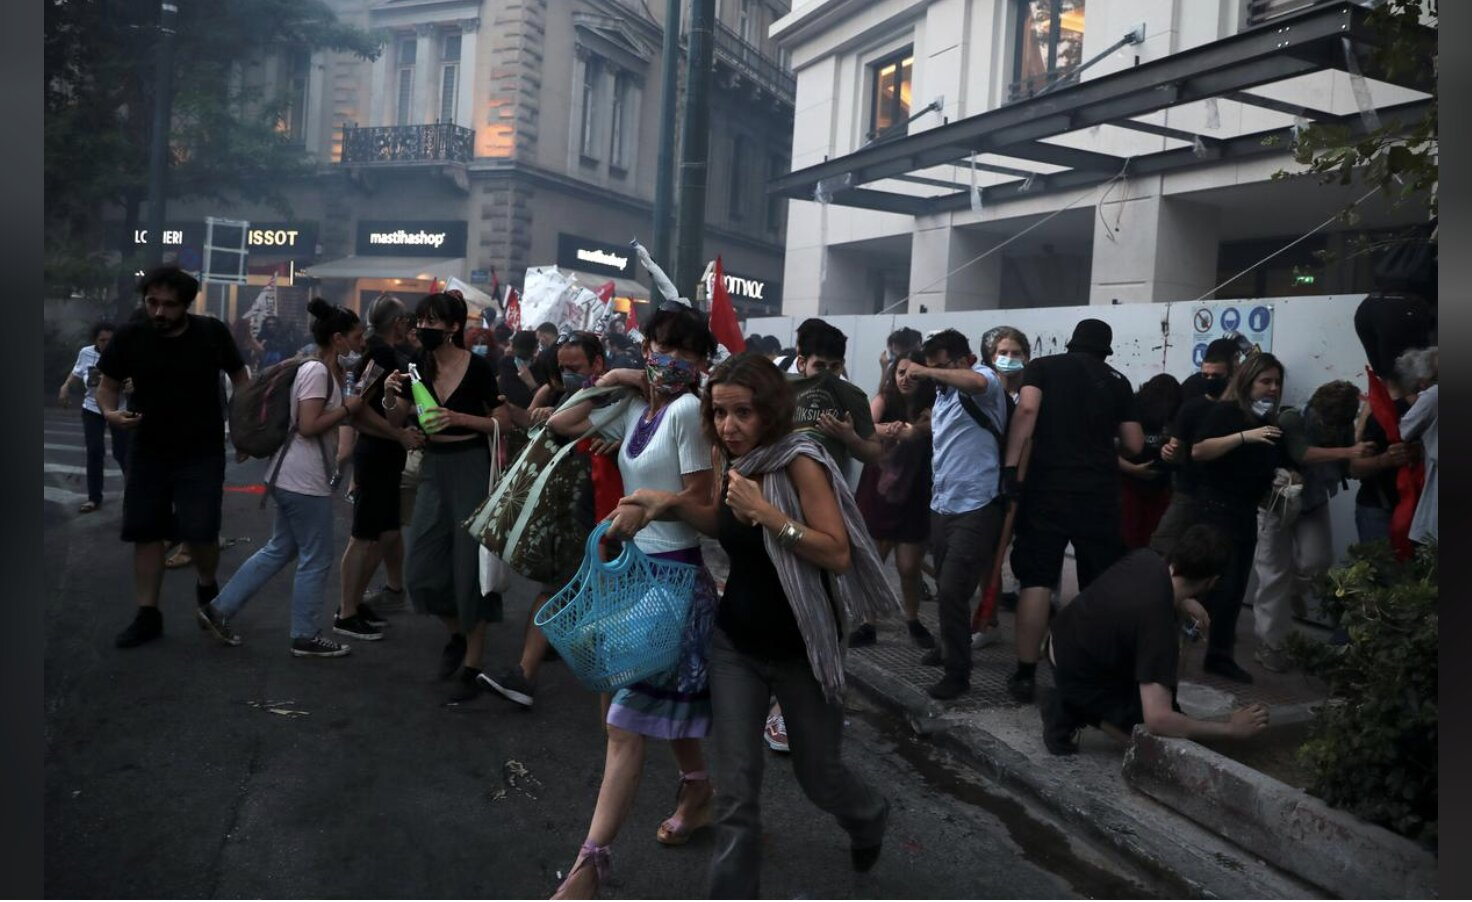 Greece passes law regulating demonstrations, thousands march in Athens